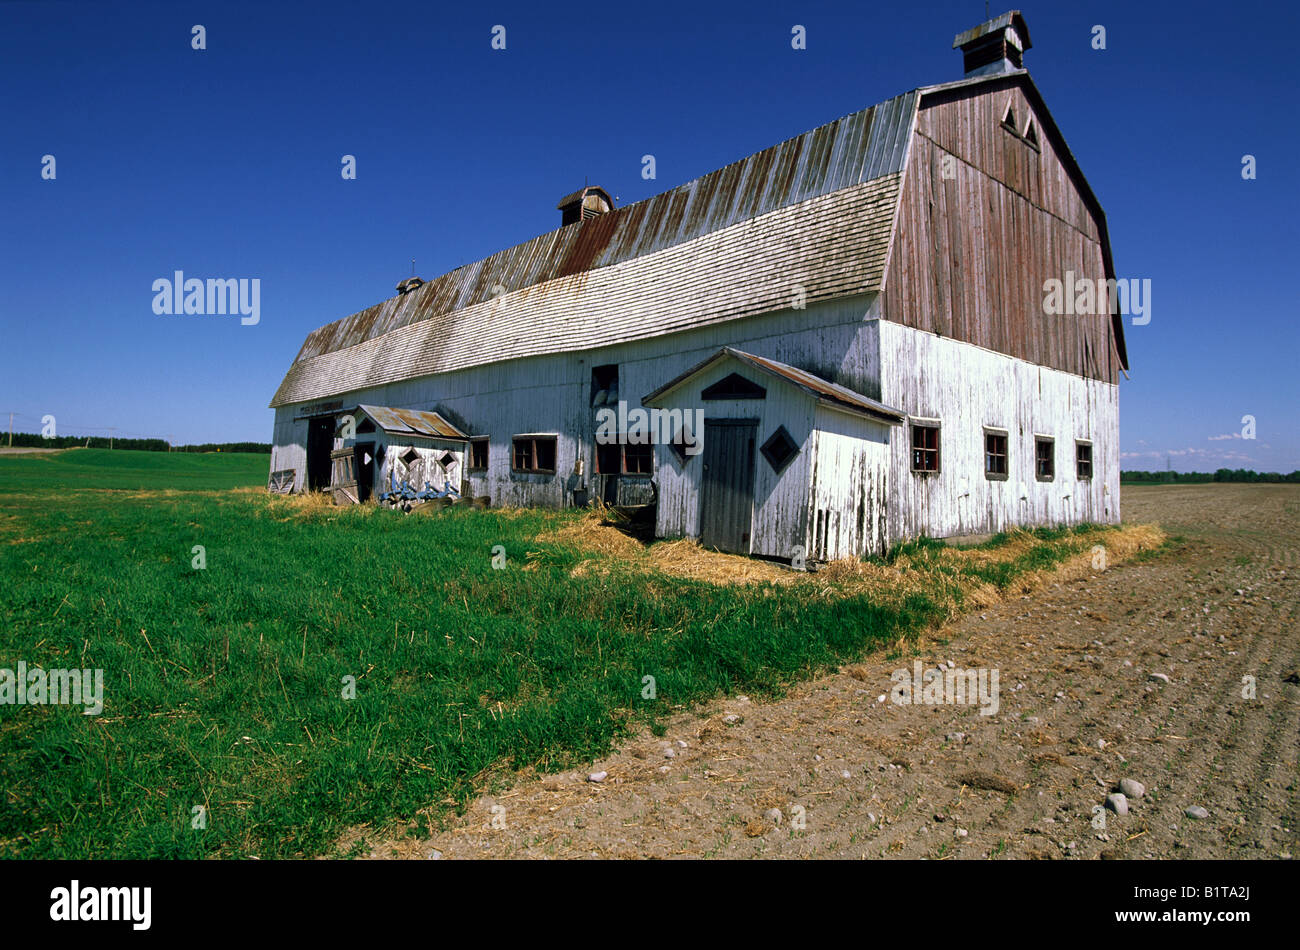 Large wooden barn in disrepair, southcentral Quebec, Canada - Stock Image